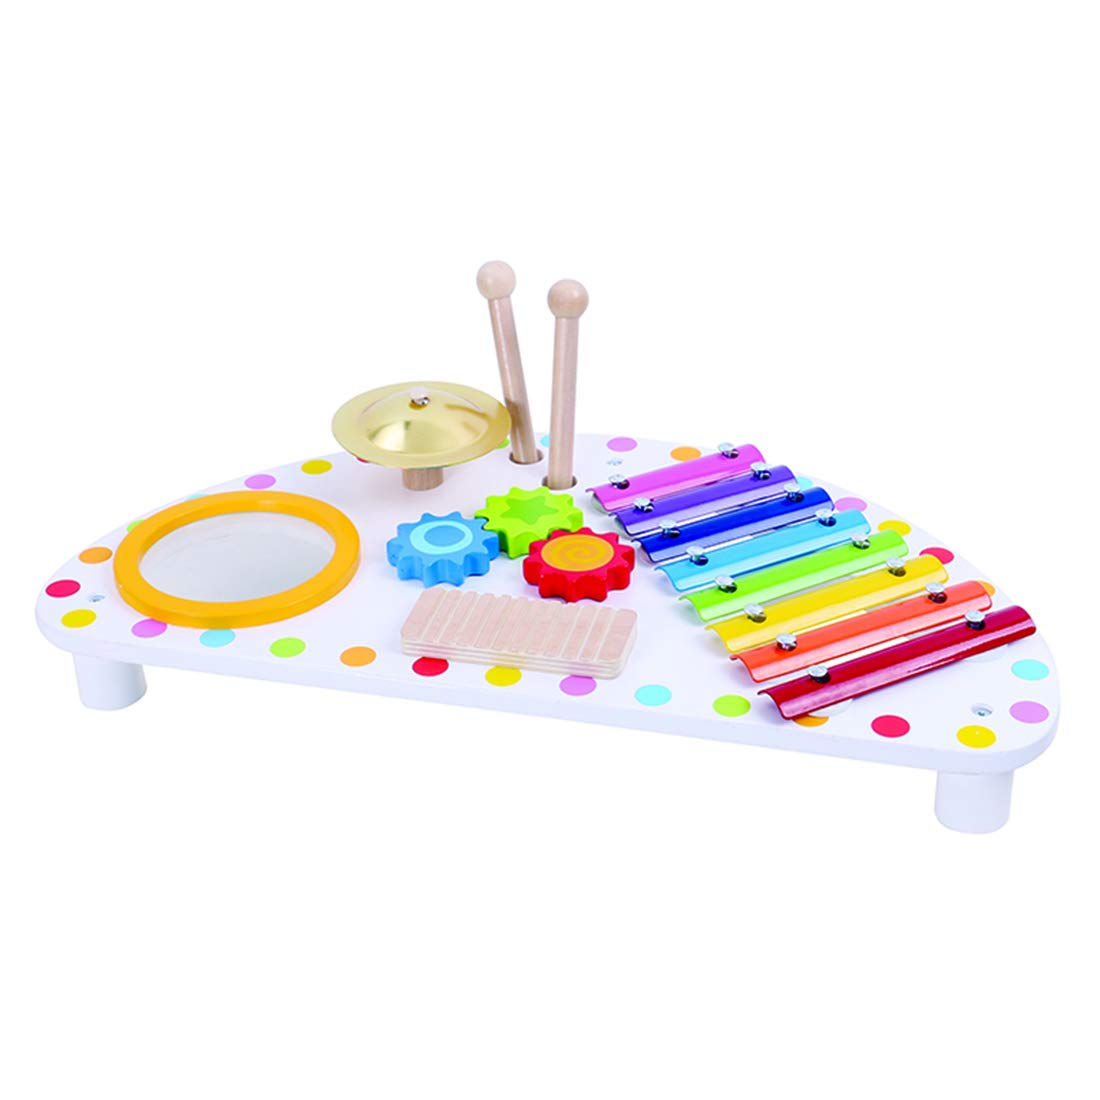 WEY&FLY Mini Xylophone for Toddlers, Mini Band Wooden Percussion Instrument, Educational Toys for Kids